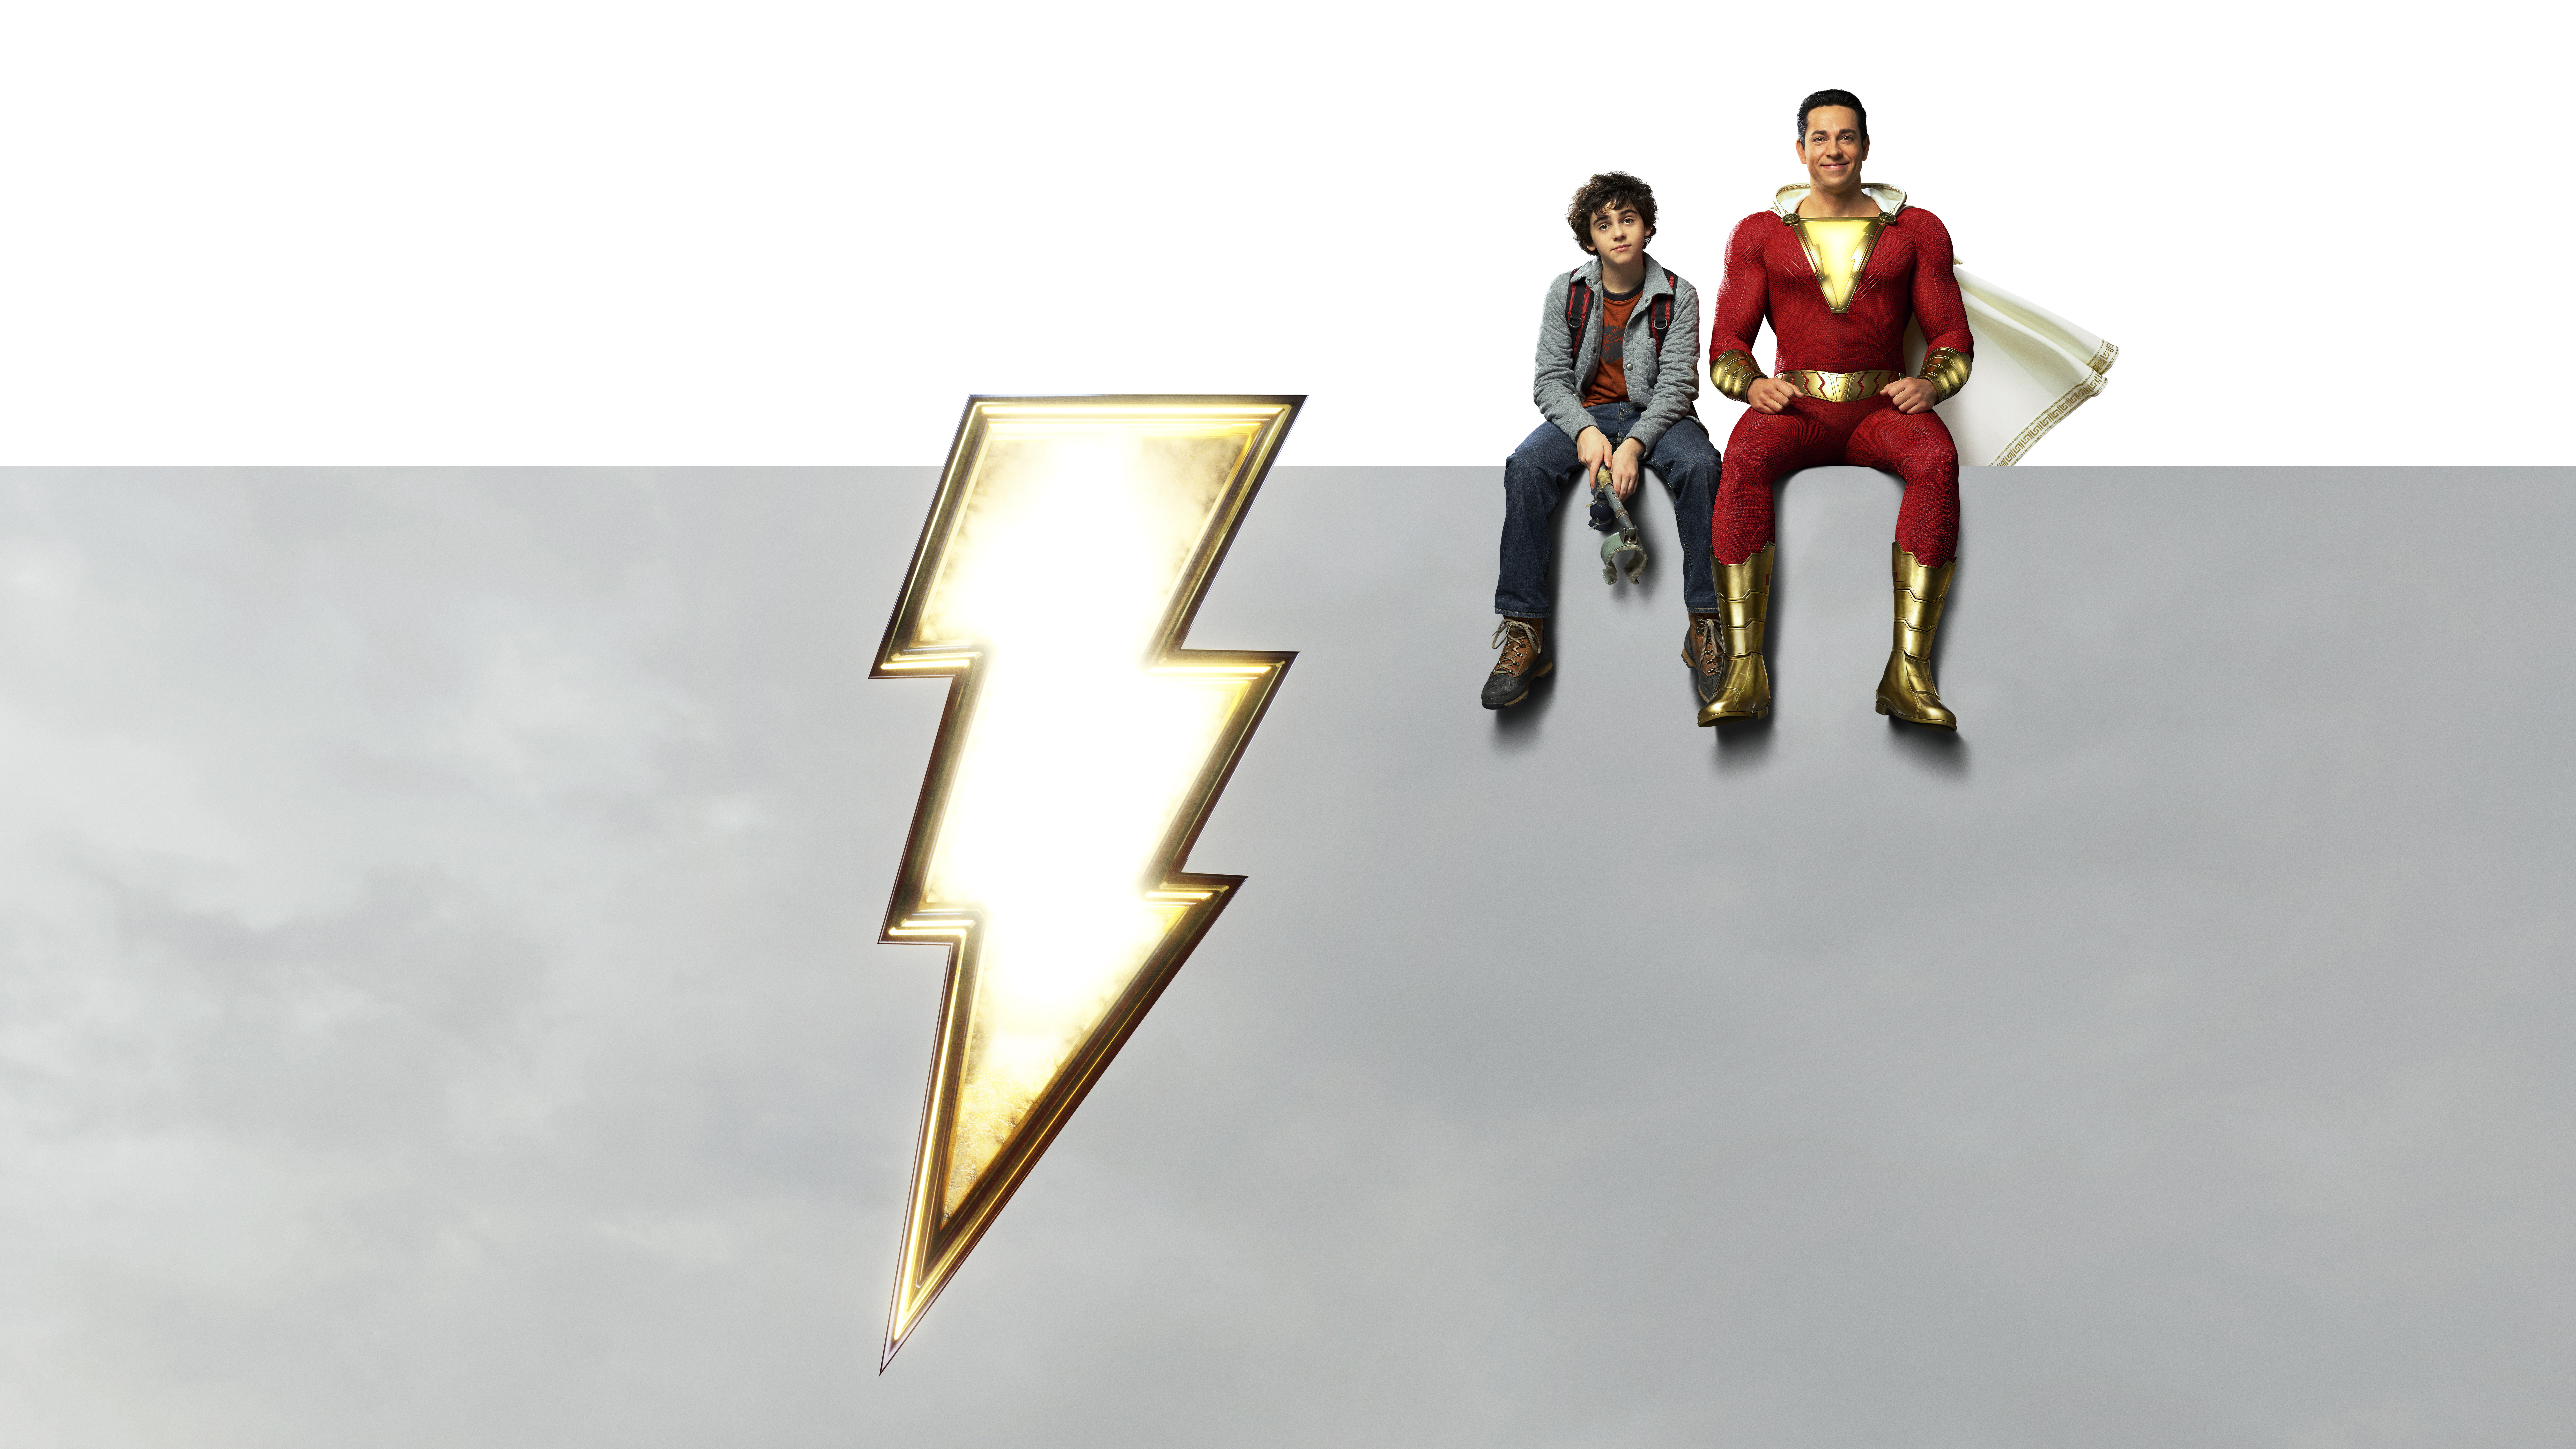 Movie Poster 2019: Dc Shazam 2019 Movie, HD Movies, 4k Wallpapers, Images